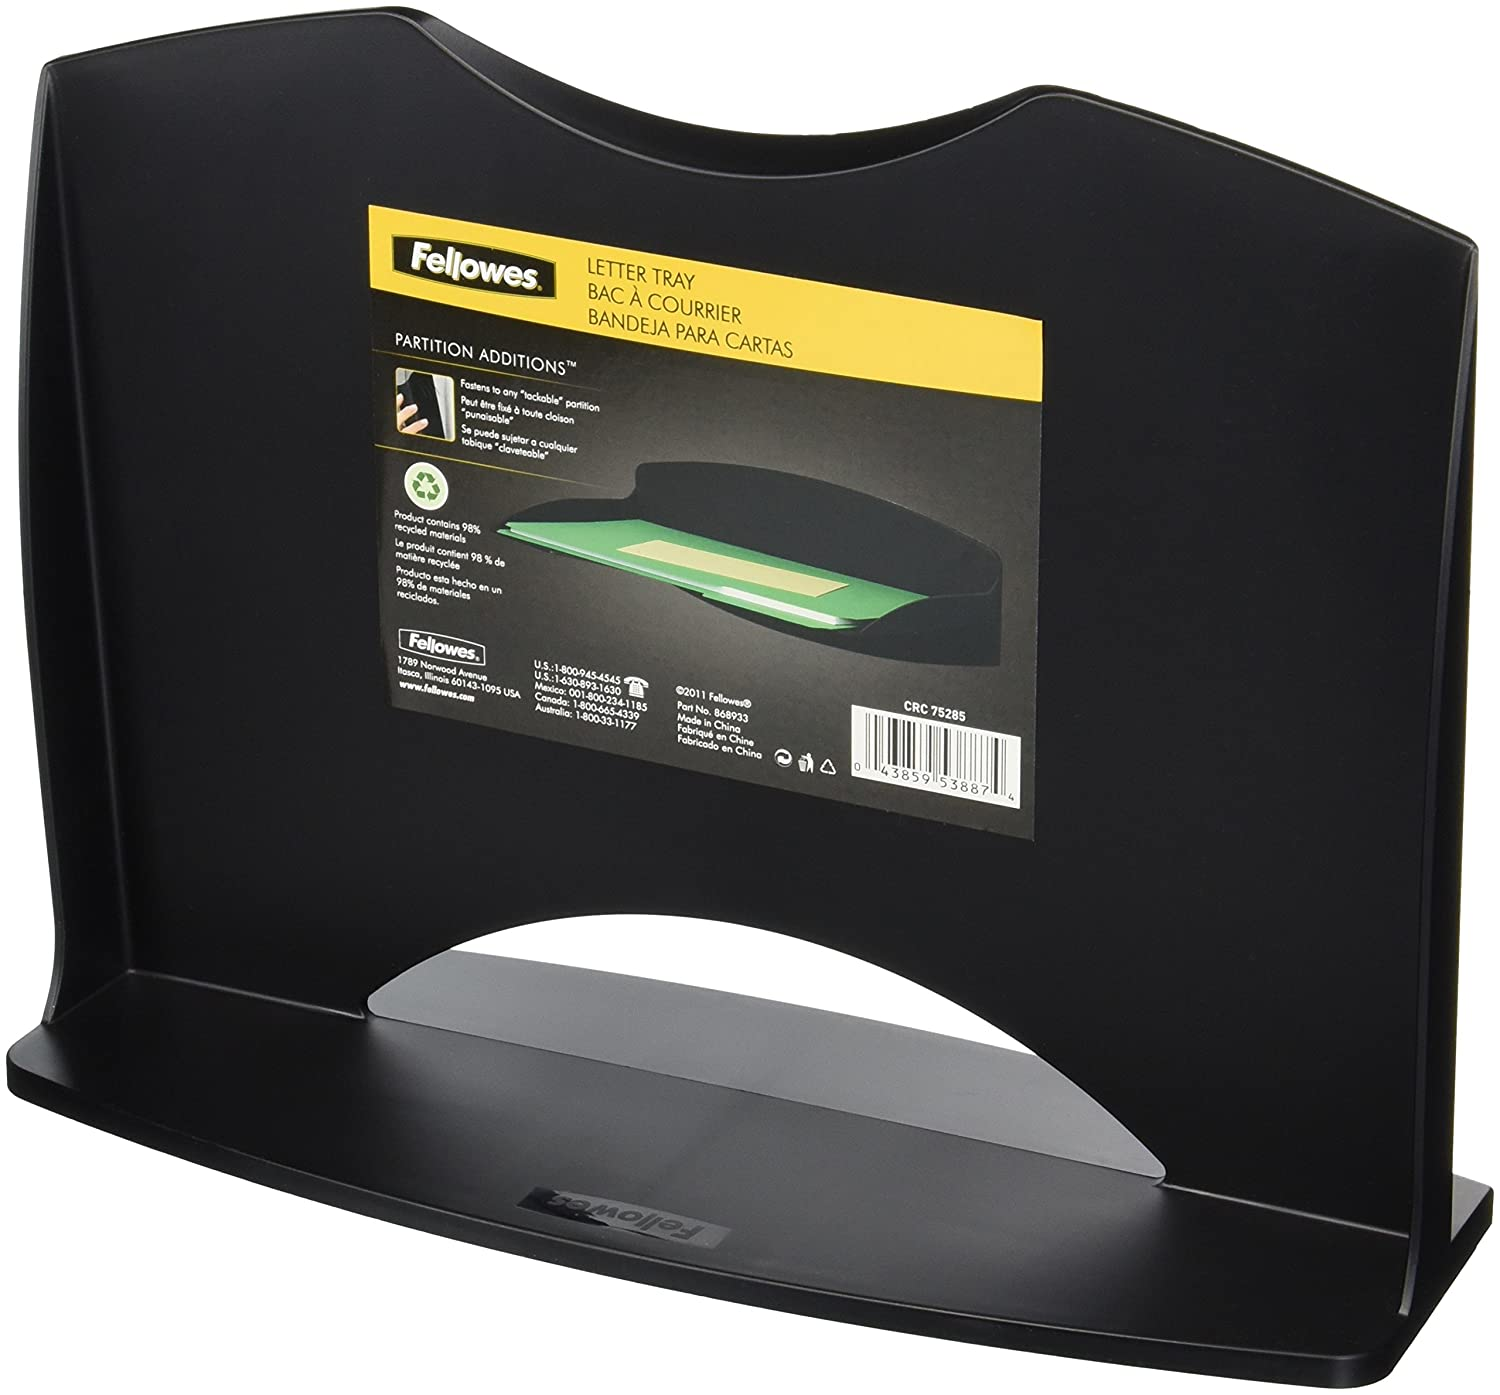 Fellowes Addition 7528501 Partition Addition Fellowes Letter Tray f68071